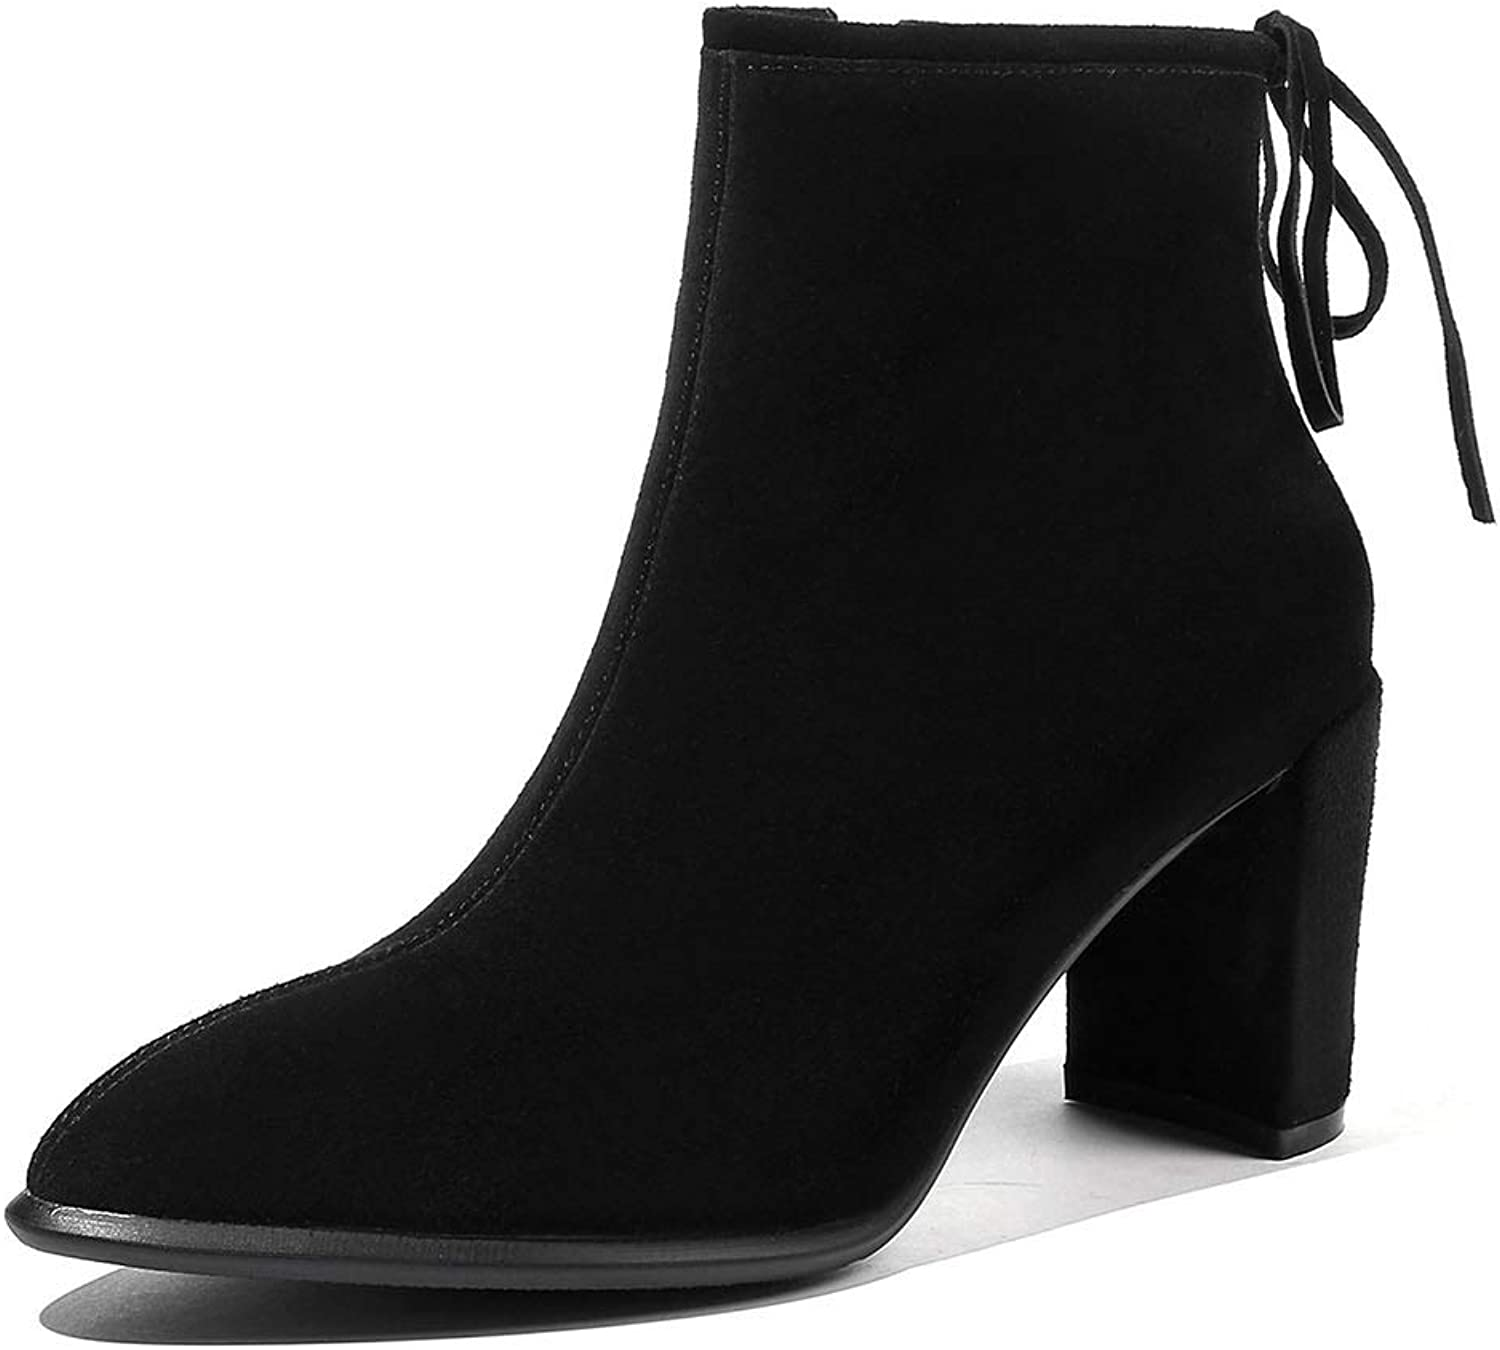 Women's Booties, Fall Winter Thick Heel High Heel Martin Boots Ladies Non Slip Wear- Resistant Fashion Ankle Boots (color   A, Size   39)